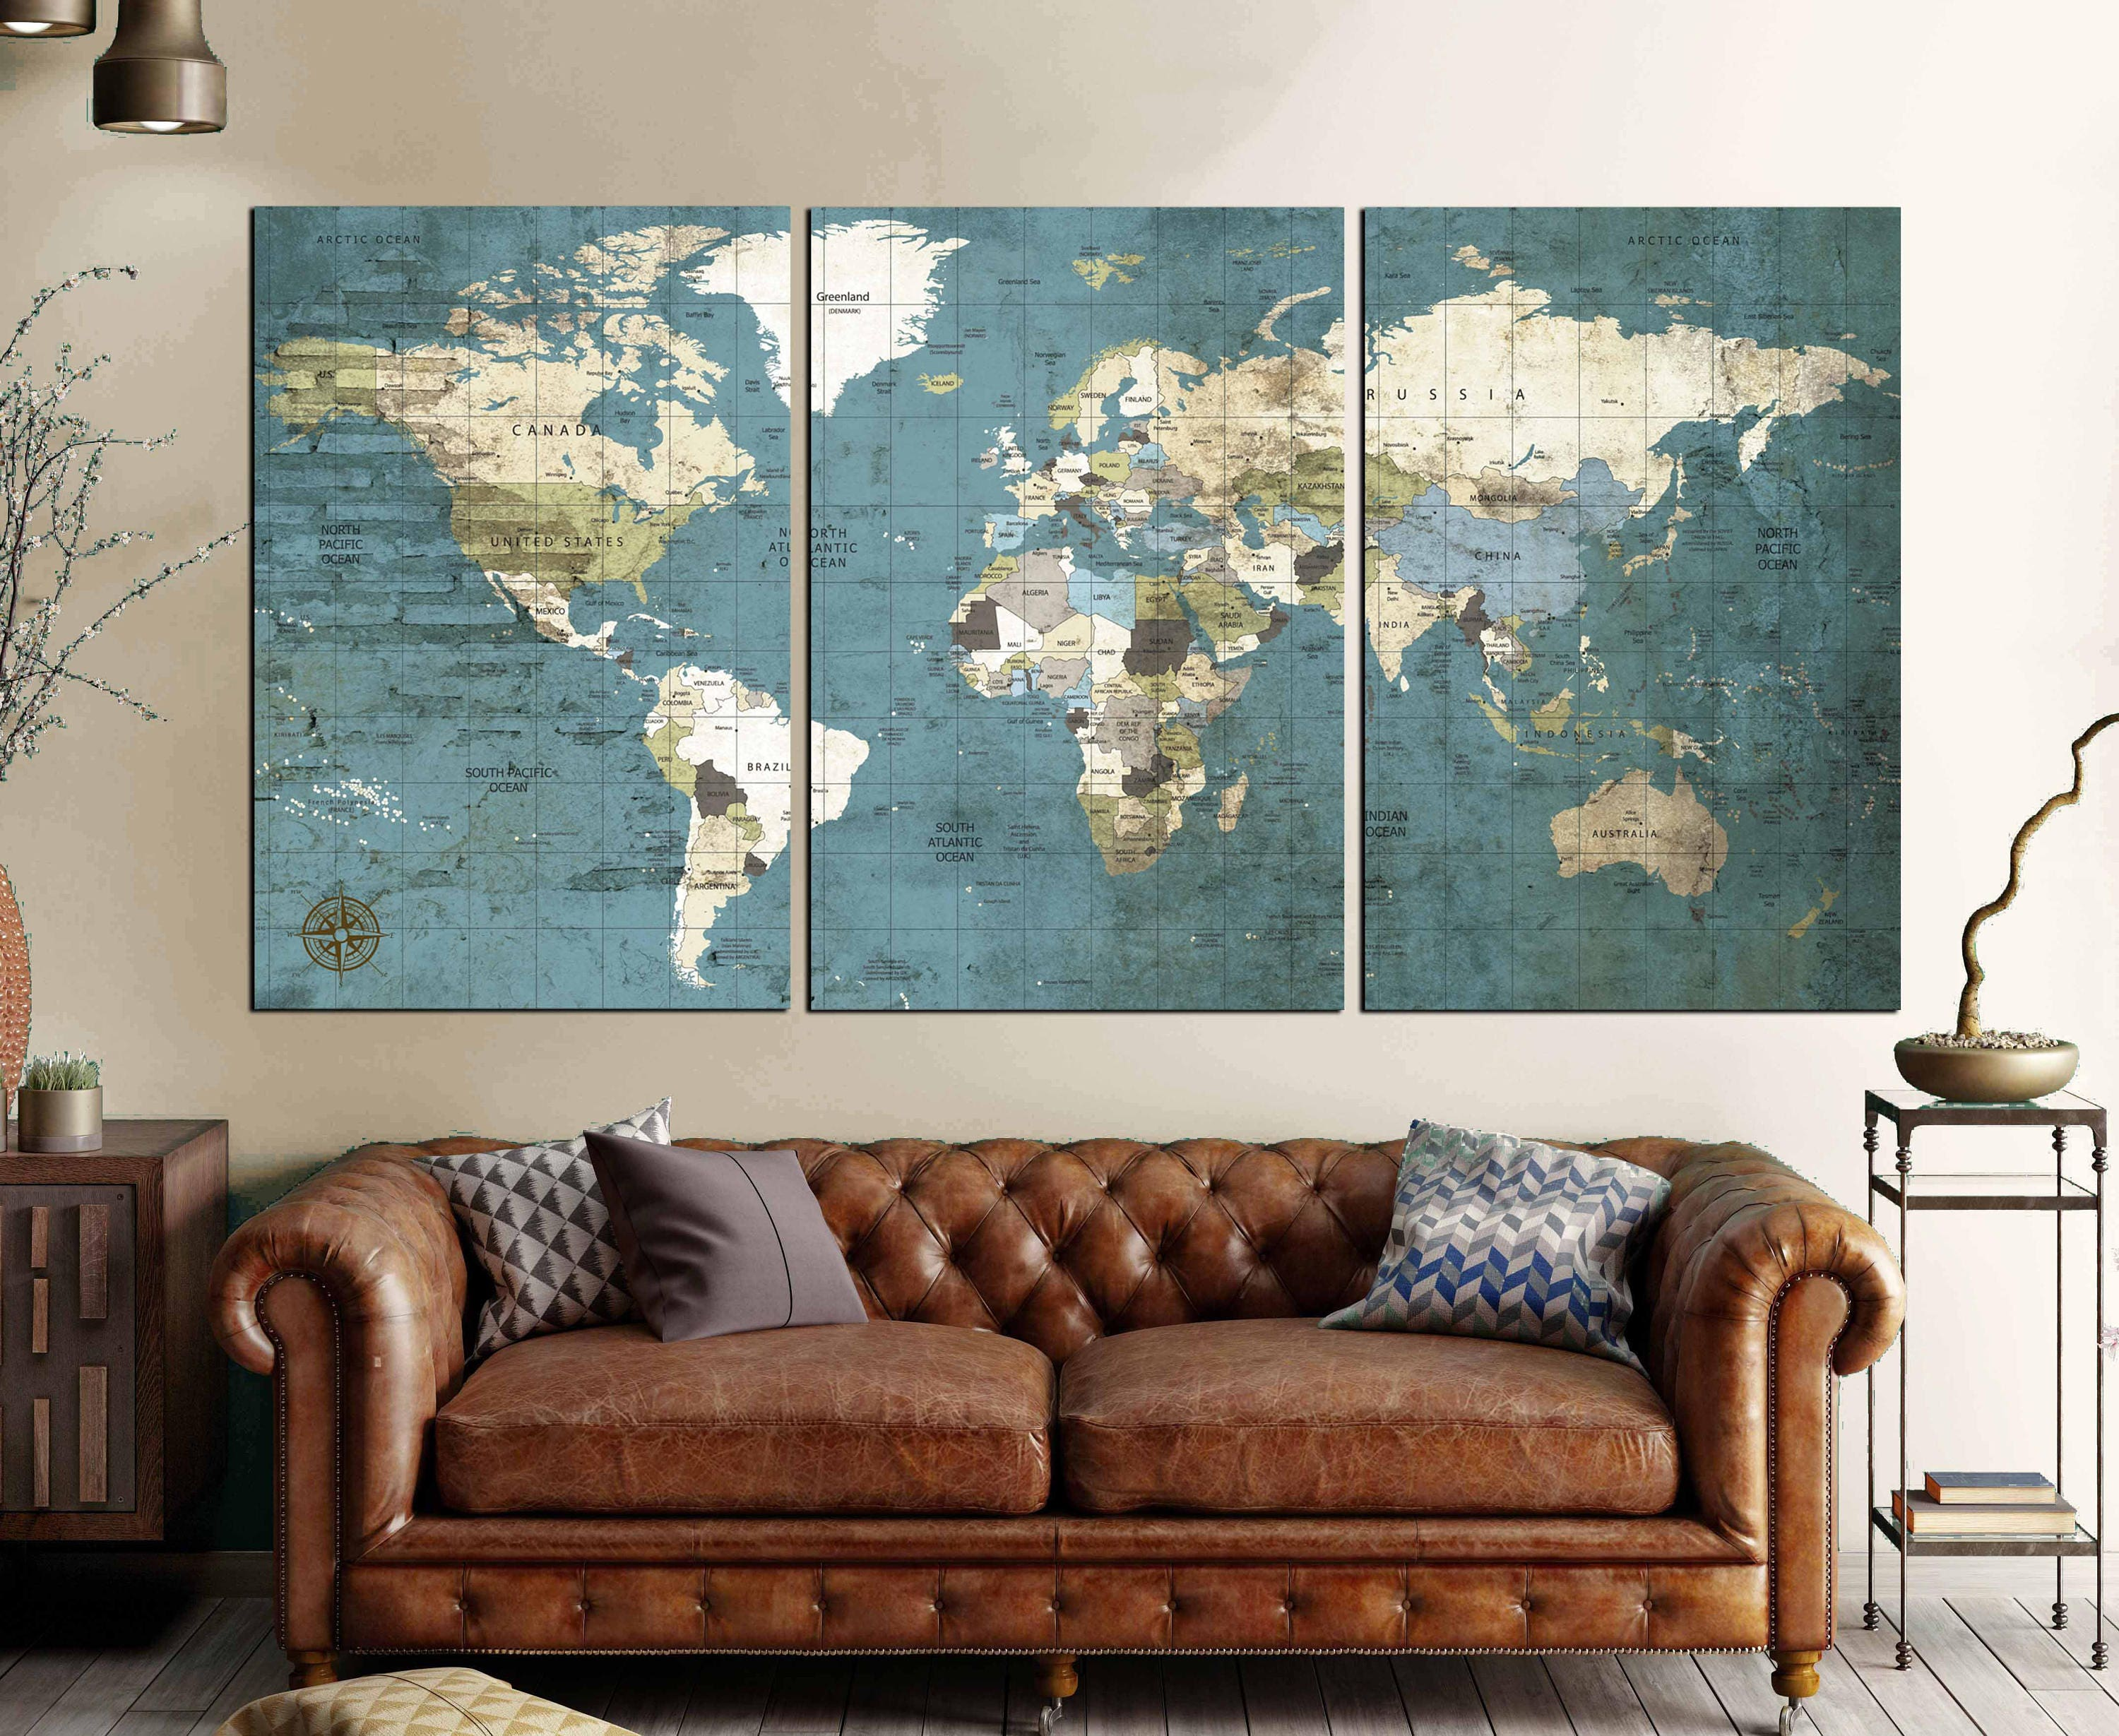 Large world map vintage canvas printworld map wall artworld map large world map vintage canvas printworld map wall artworld map push pin world travel mapworld map vintageworld map canvaspolitical map gumiabroncs Images